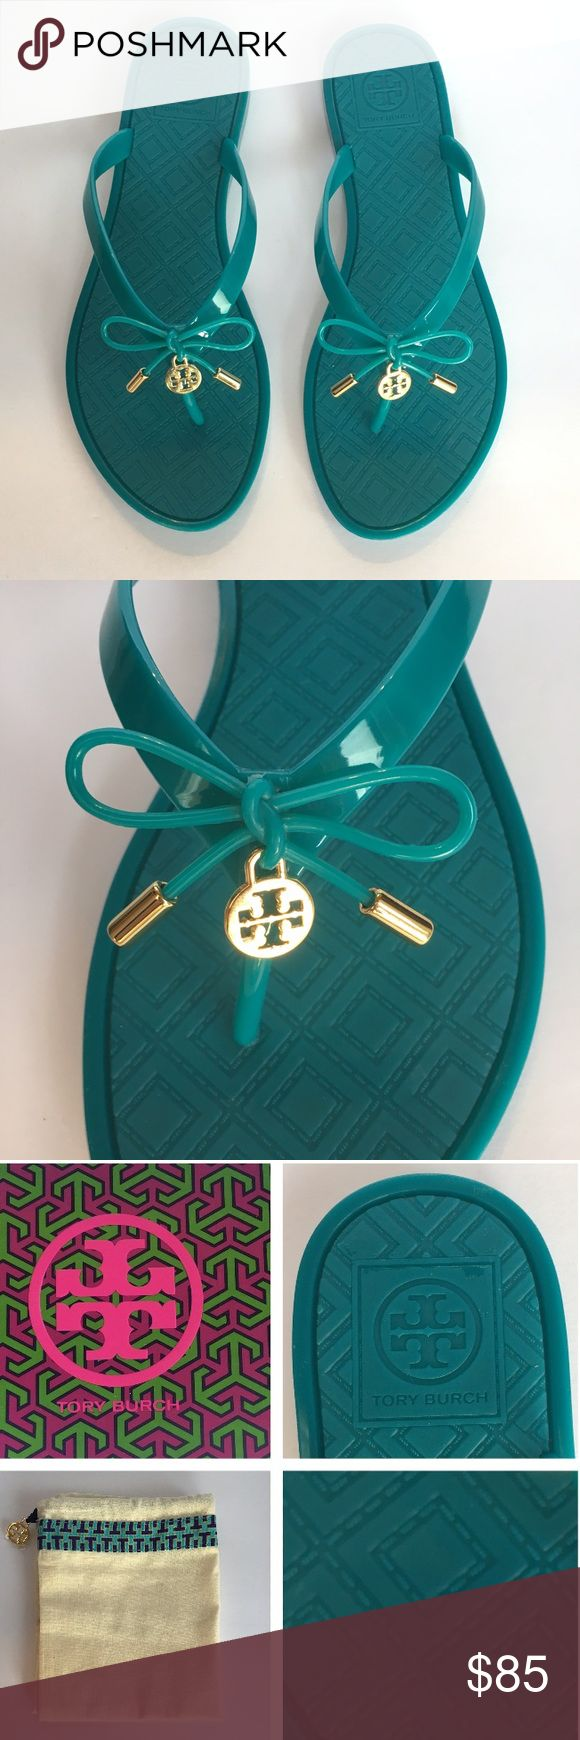 NIB Tory Burch Jelly Bow Thong Ocean Turo Sz. 7&9 NIB Tory Burch Jelly Bow Flip Flop. Color: Ocean Turo. Sizes: 7&9. Polish up your poolside look with these chic, bow-topped jelly flip flops from Tory Burch.Thermoplastic polyurethane upper, thermoplastic polyurethane sole. Imported. Comes with original box and dust bag. Super cute and comfy! Prime is firm. Enjoy! ❤ Tory Burch Shoes Sandals